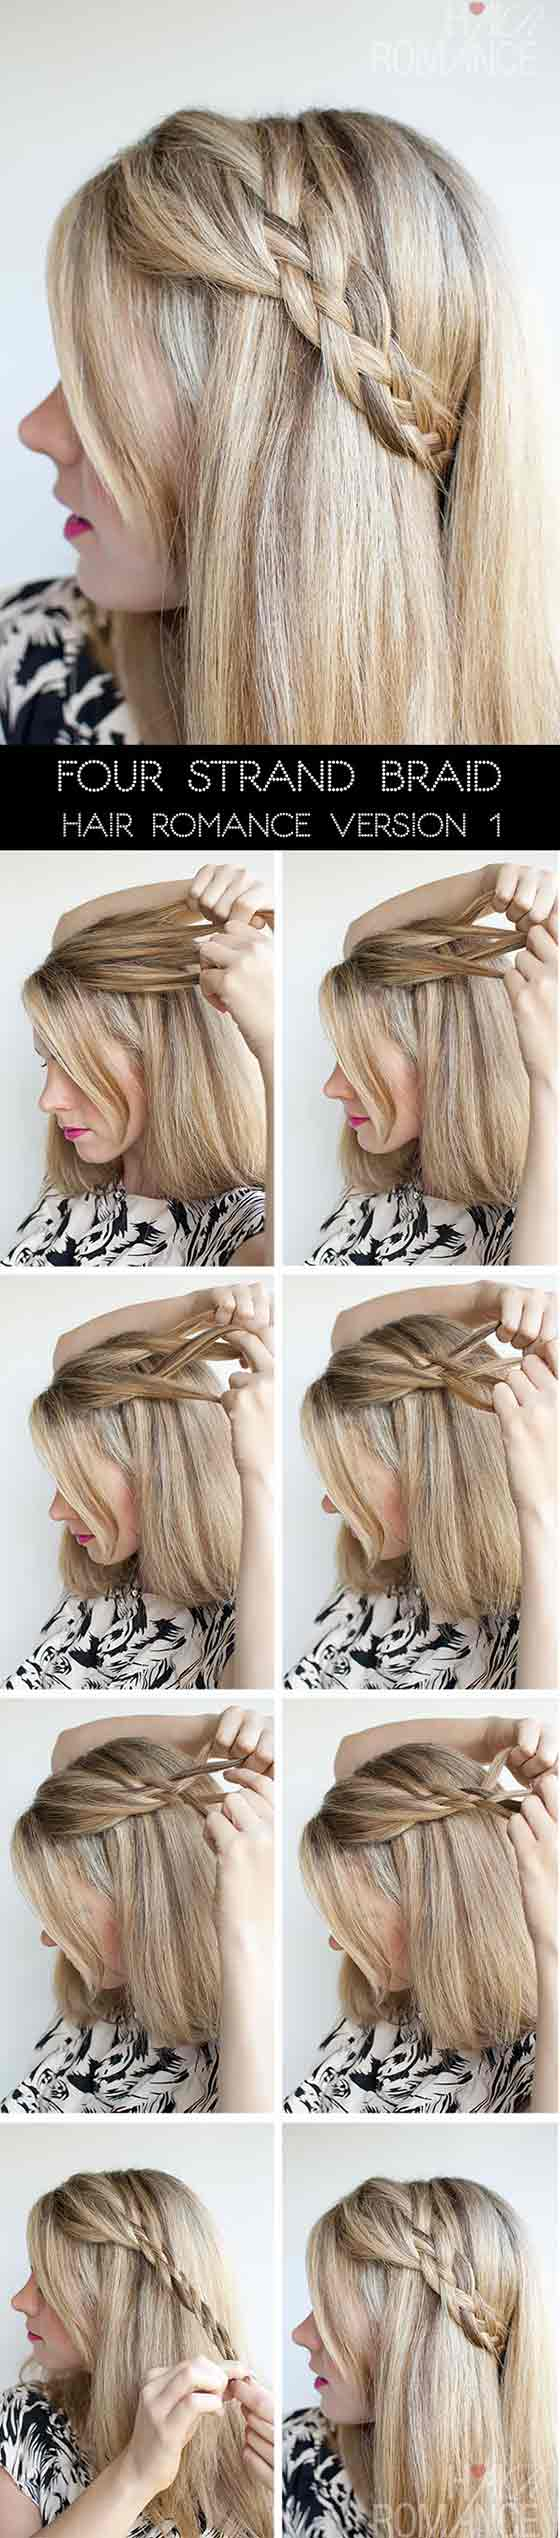 40 Easy Braided Hairstyles That We Love Gravetics